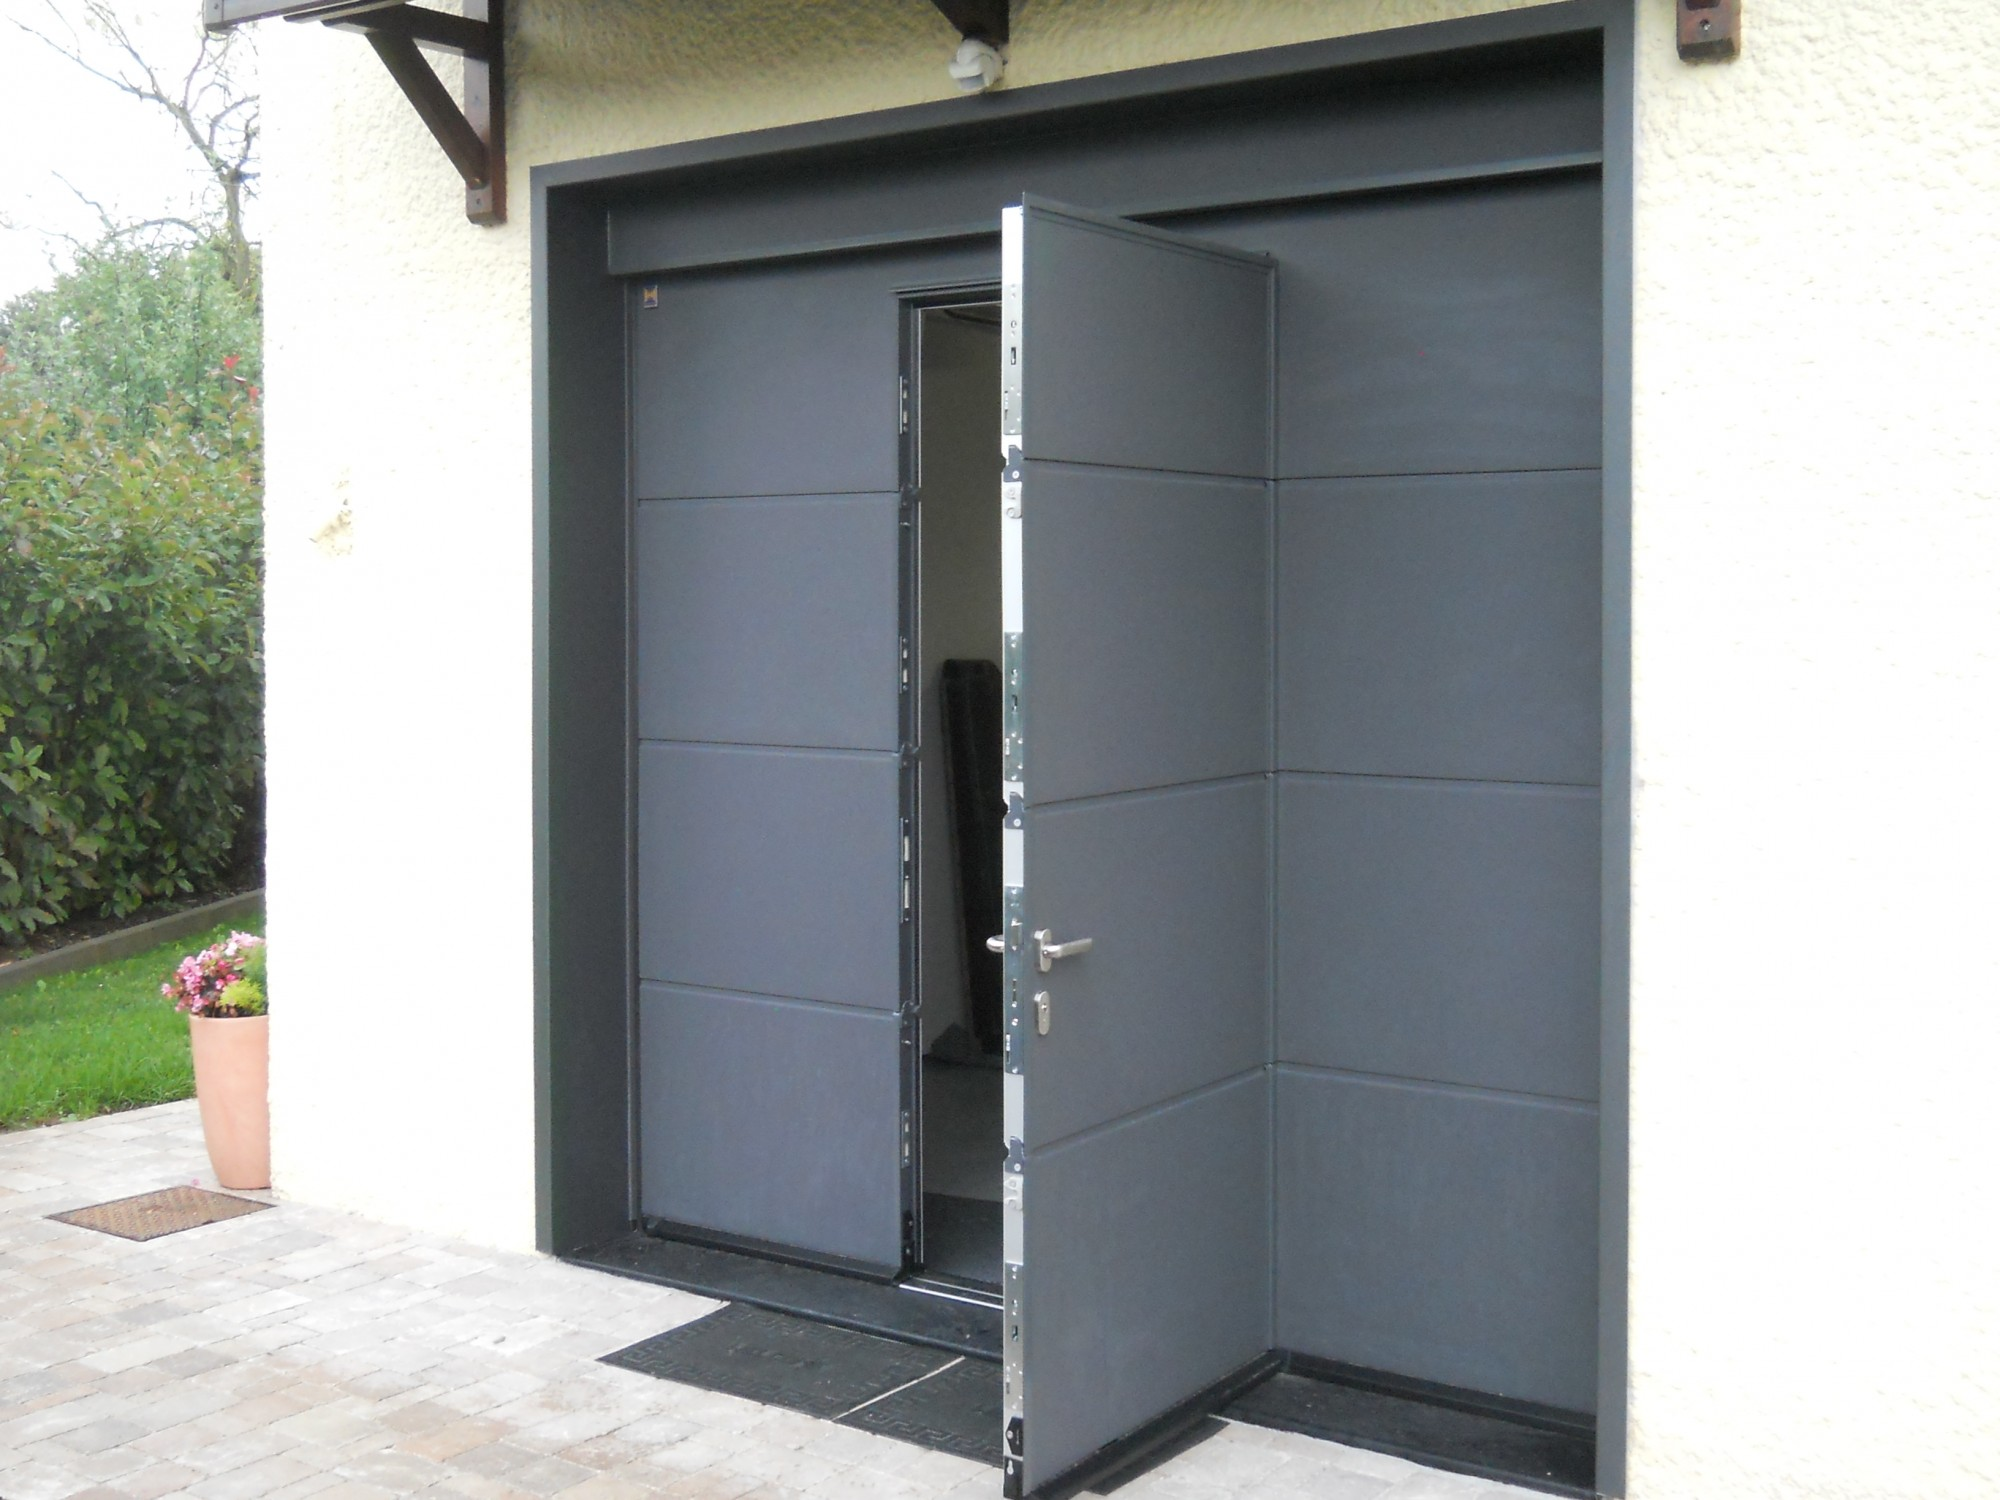 Isolation Exterieur Garage Porte De Garage Sectionnelle Sur Mesure Hormann